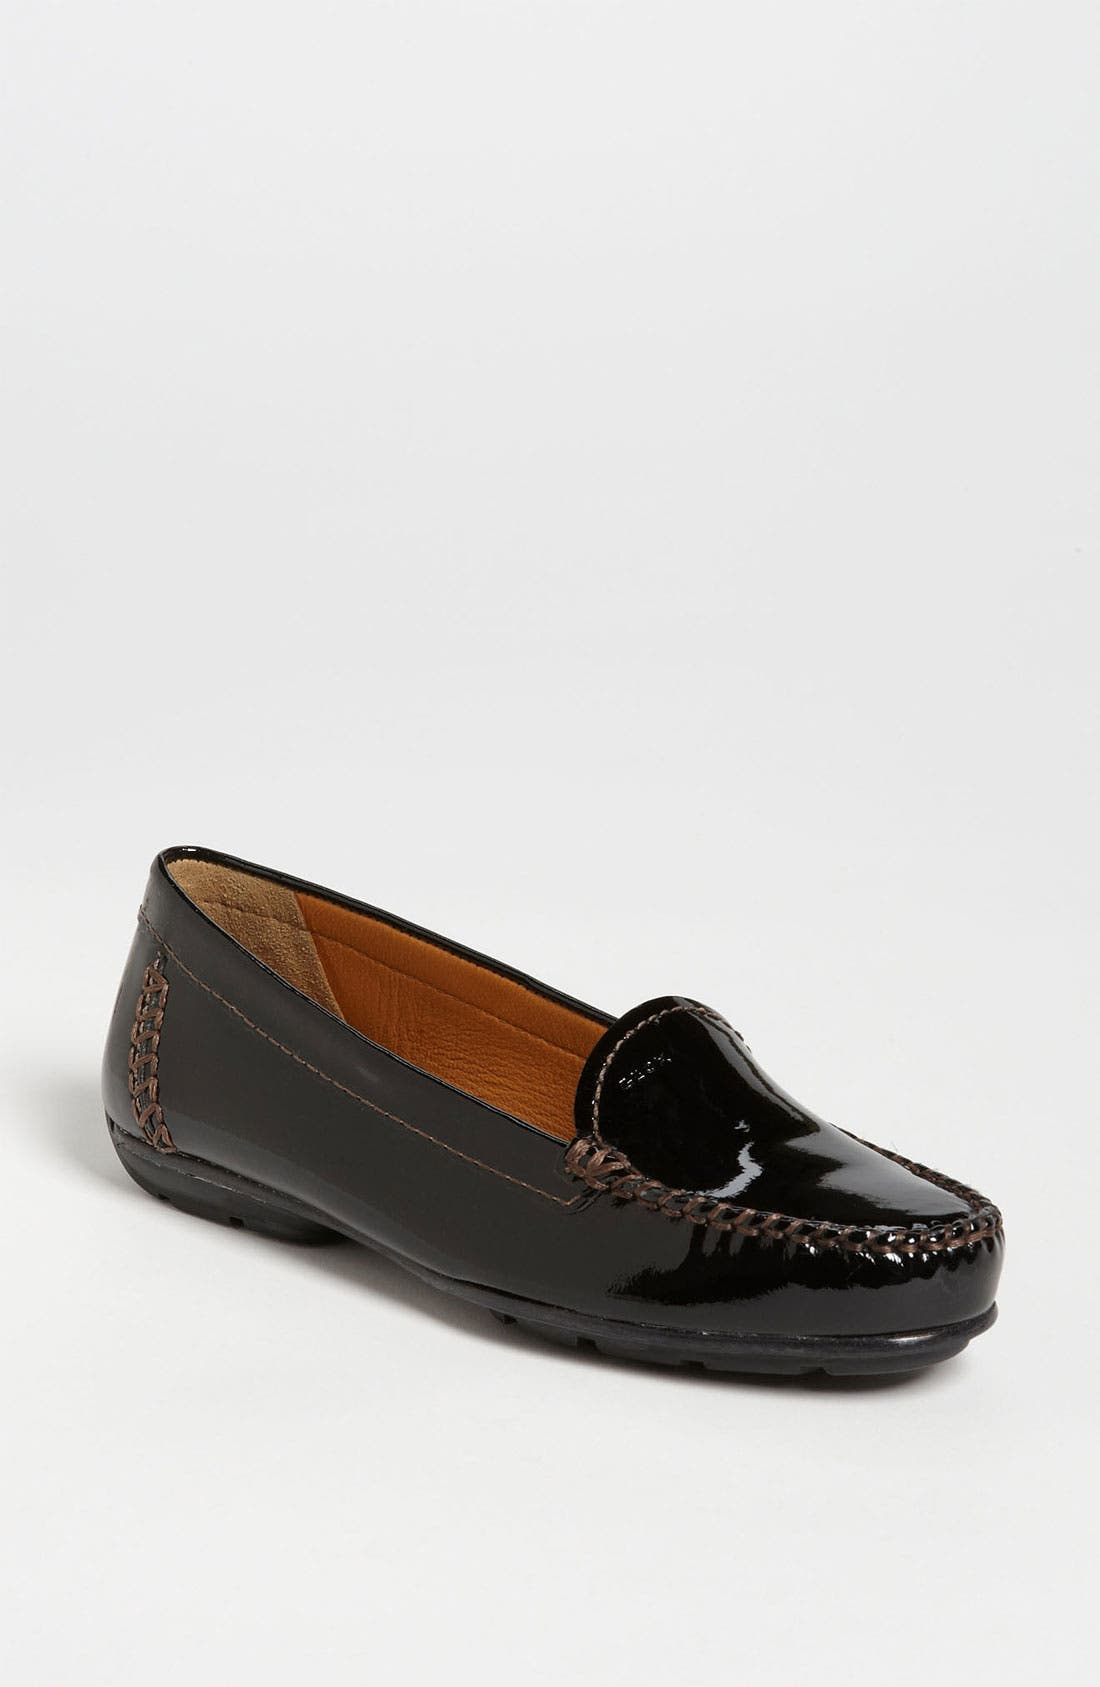 Alternate Image 1 Selected - Geox 'Donna - Italy' Loafer